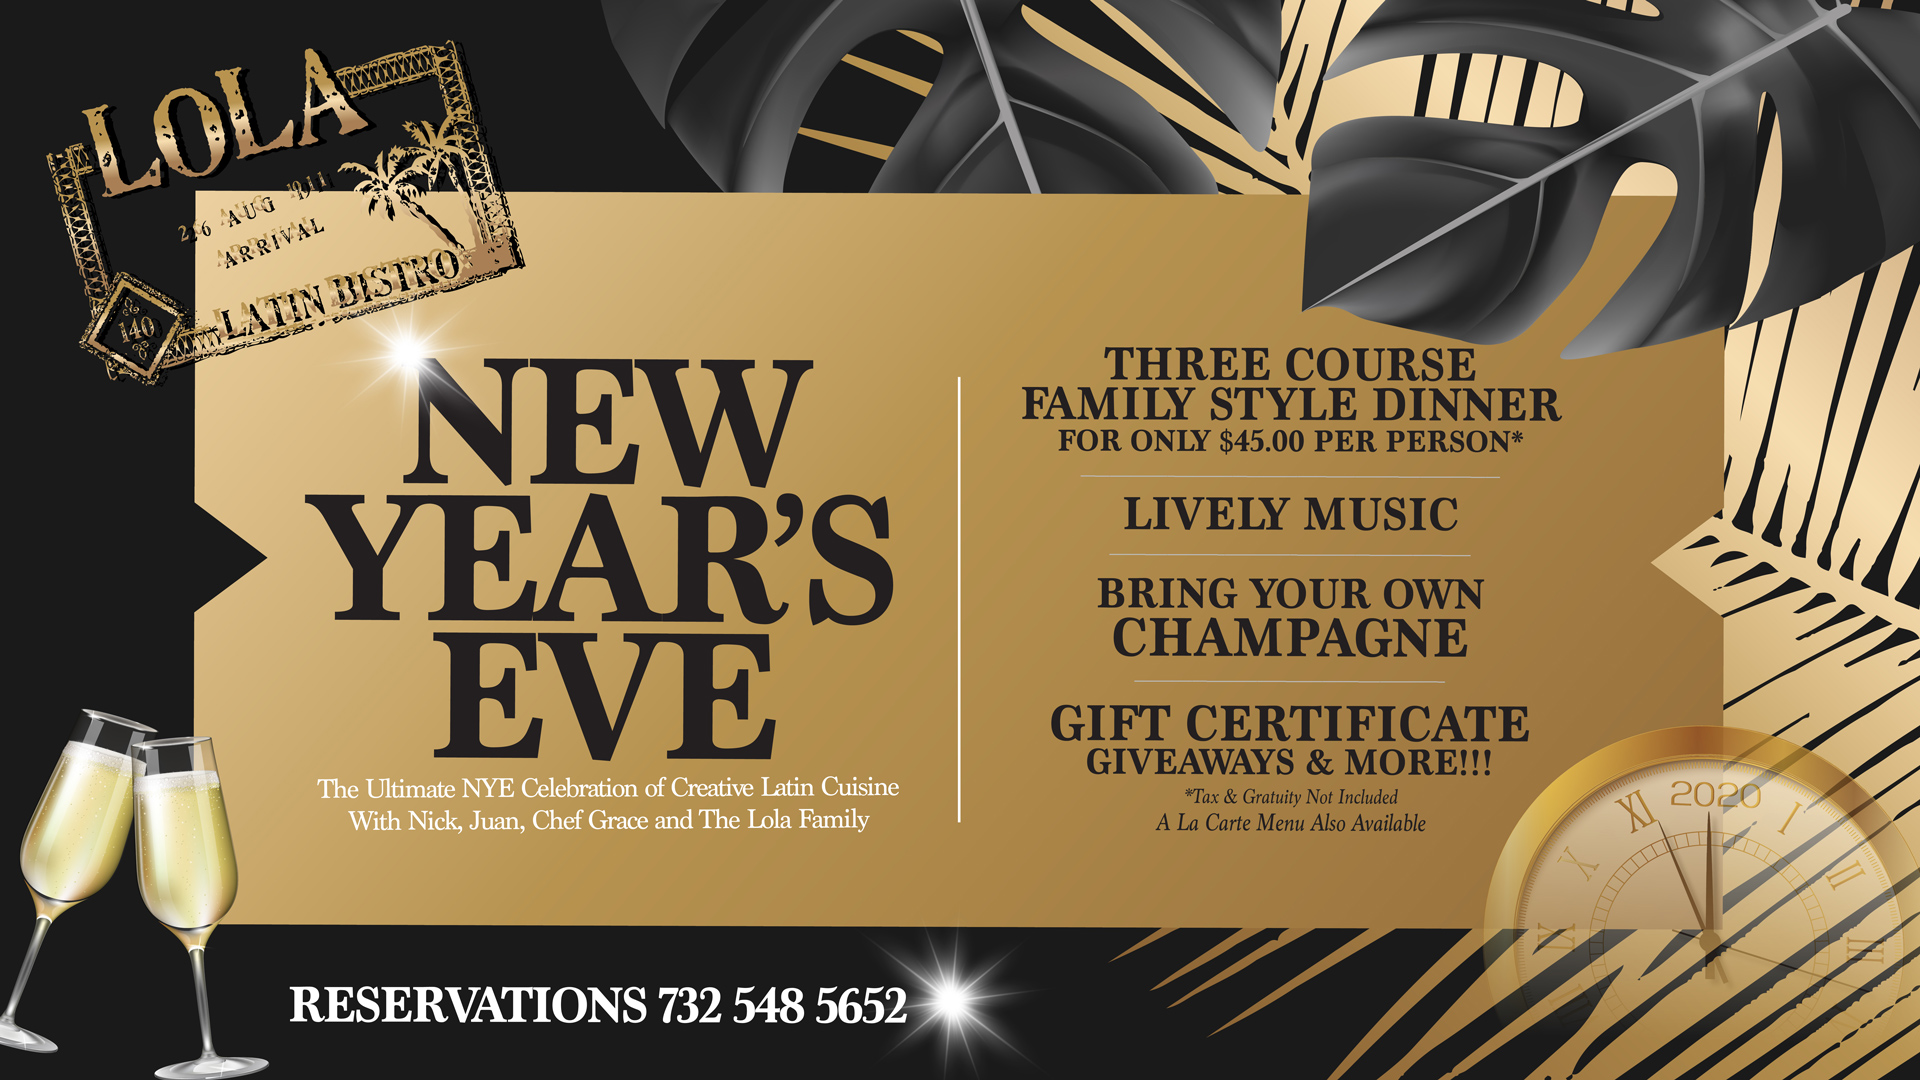 Celebrate a Happy New Year's 2020 at Lola – Reserve Today